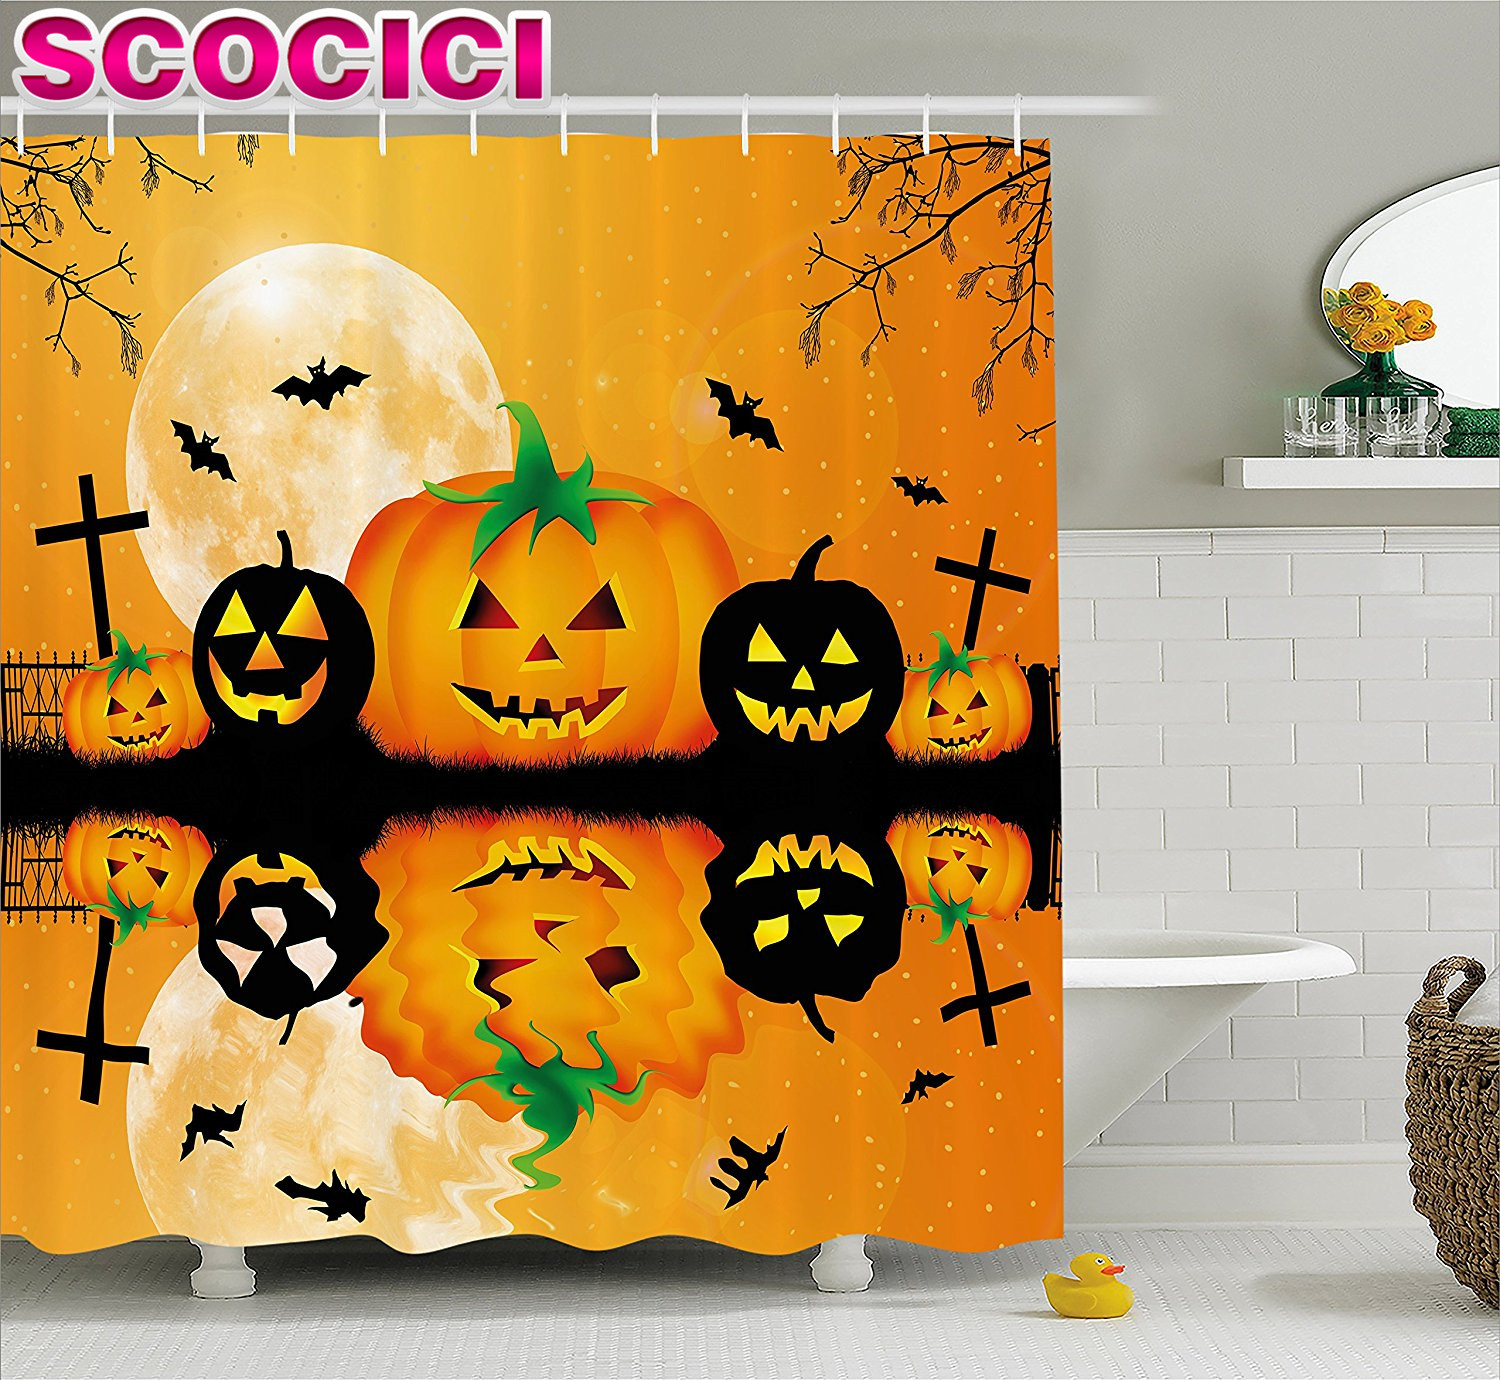 Halloween Decorations Shower Curtain Set Spooky Carved Halloween Pumpkin Decor Full Moon With Bats And Grave